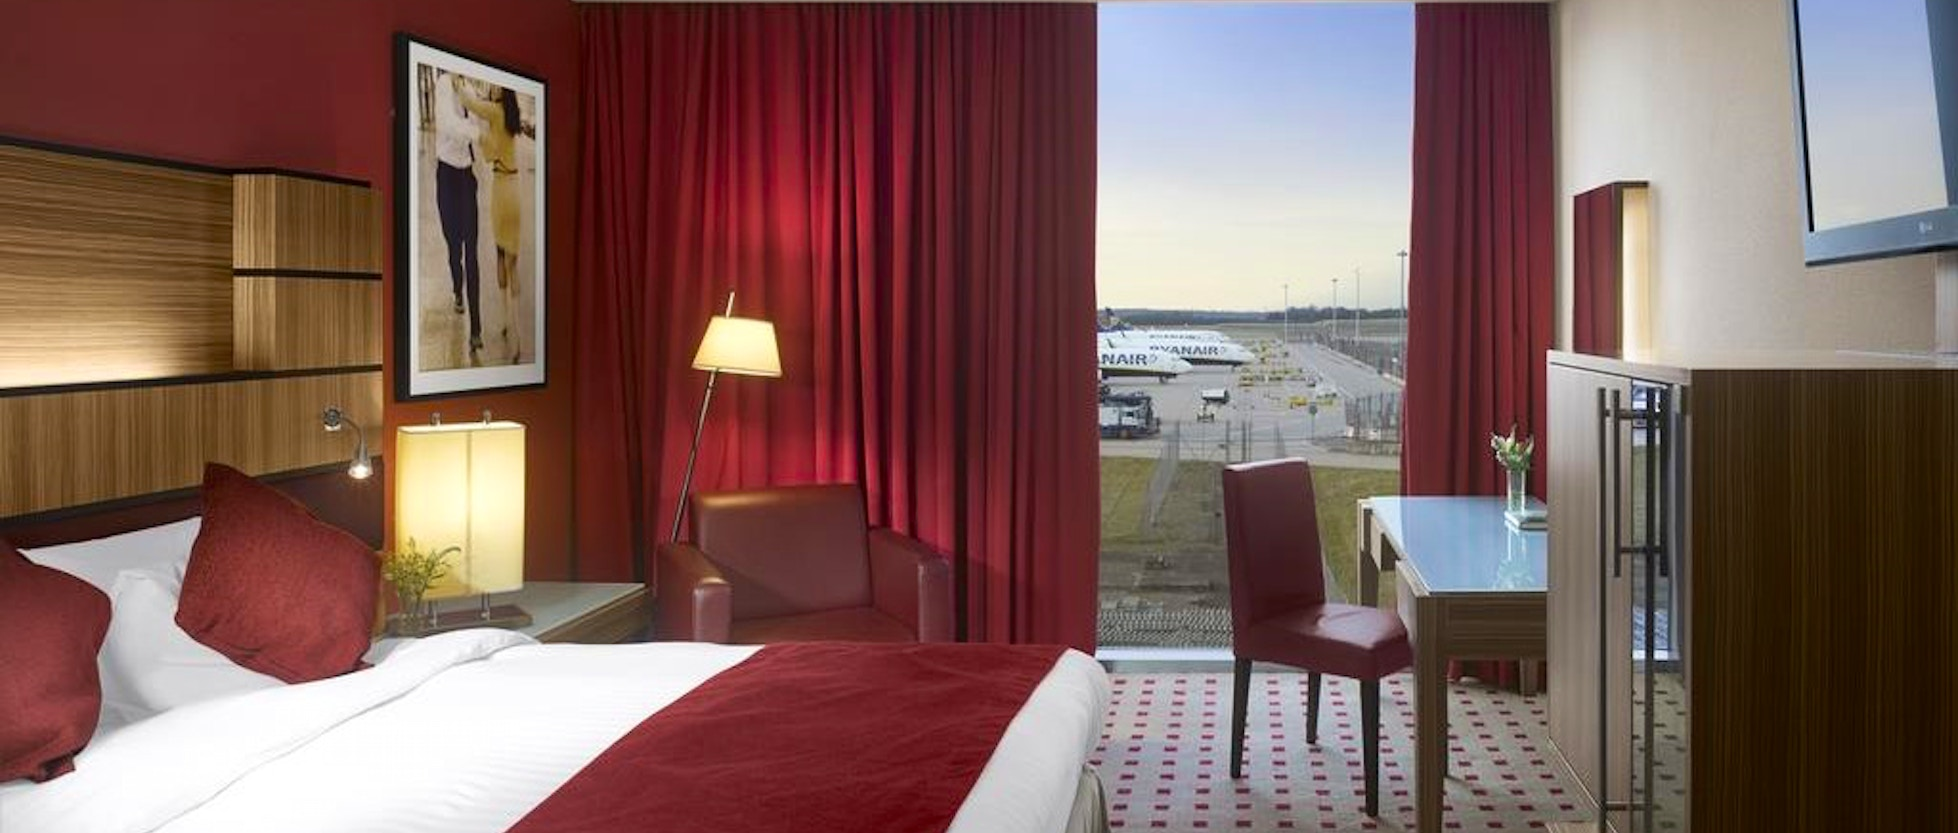 10 Hotel a Stansted: Dove dormire vicino all\'aeroporto di Londra